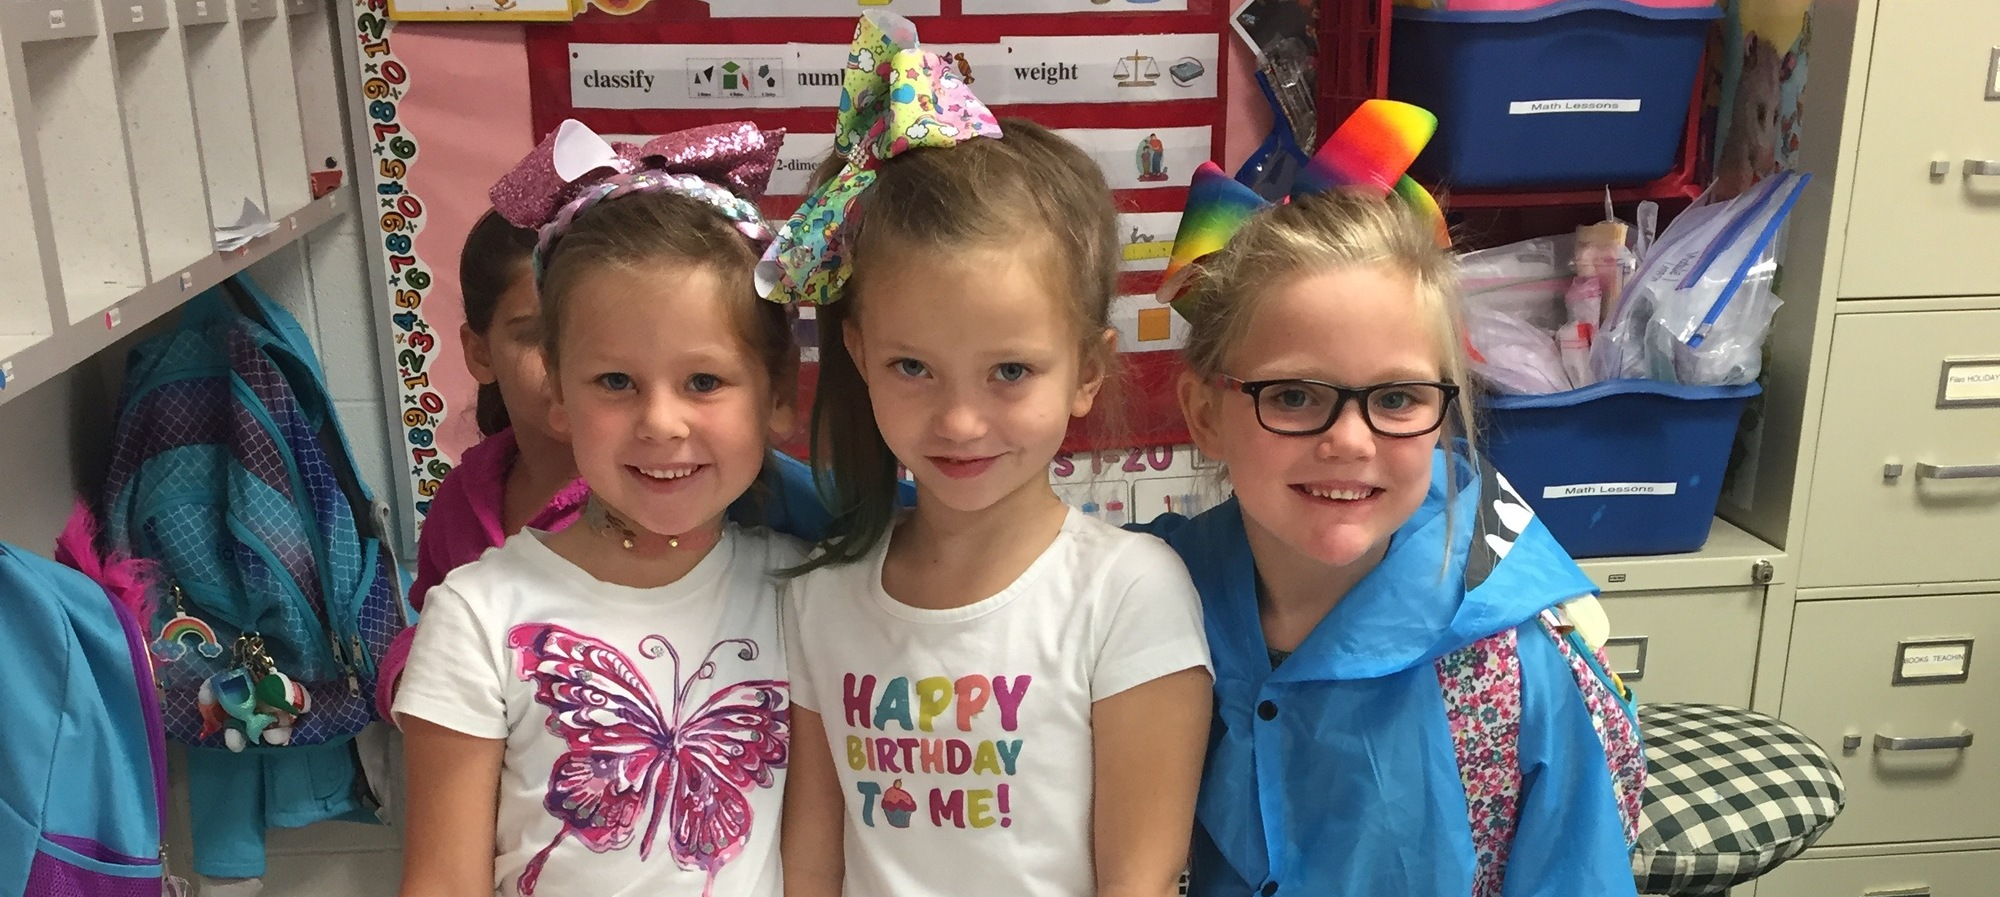 Three girls with bows in their hair.